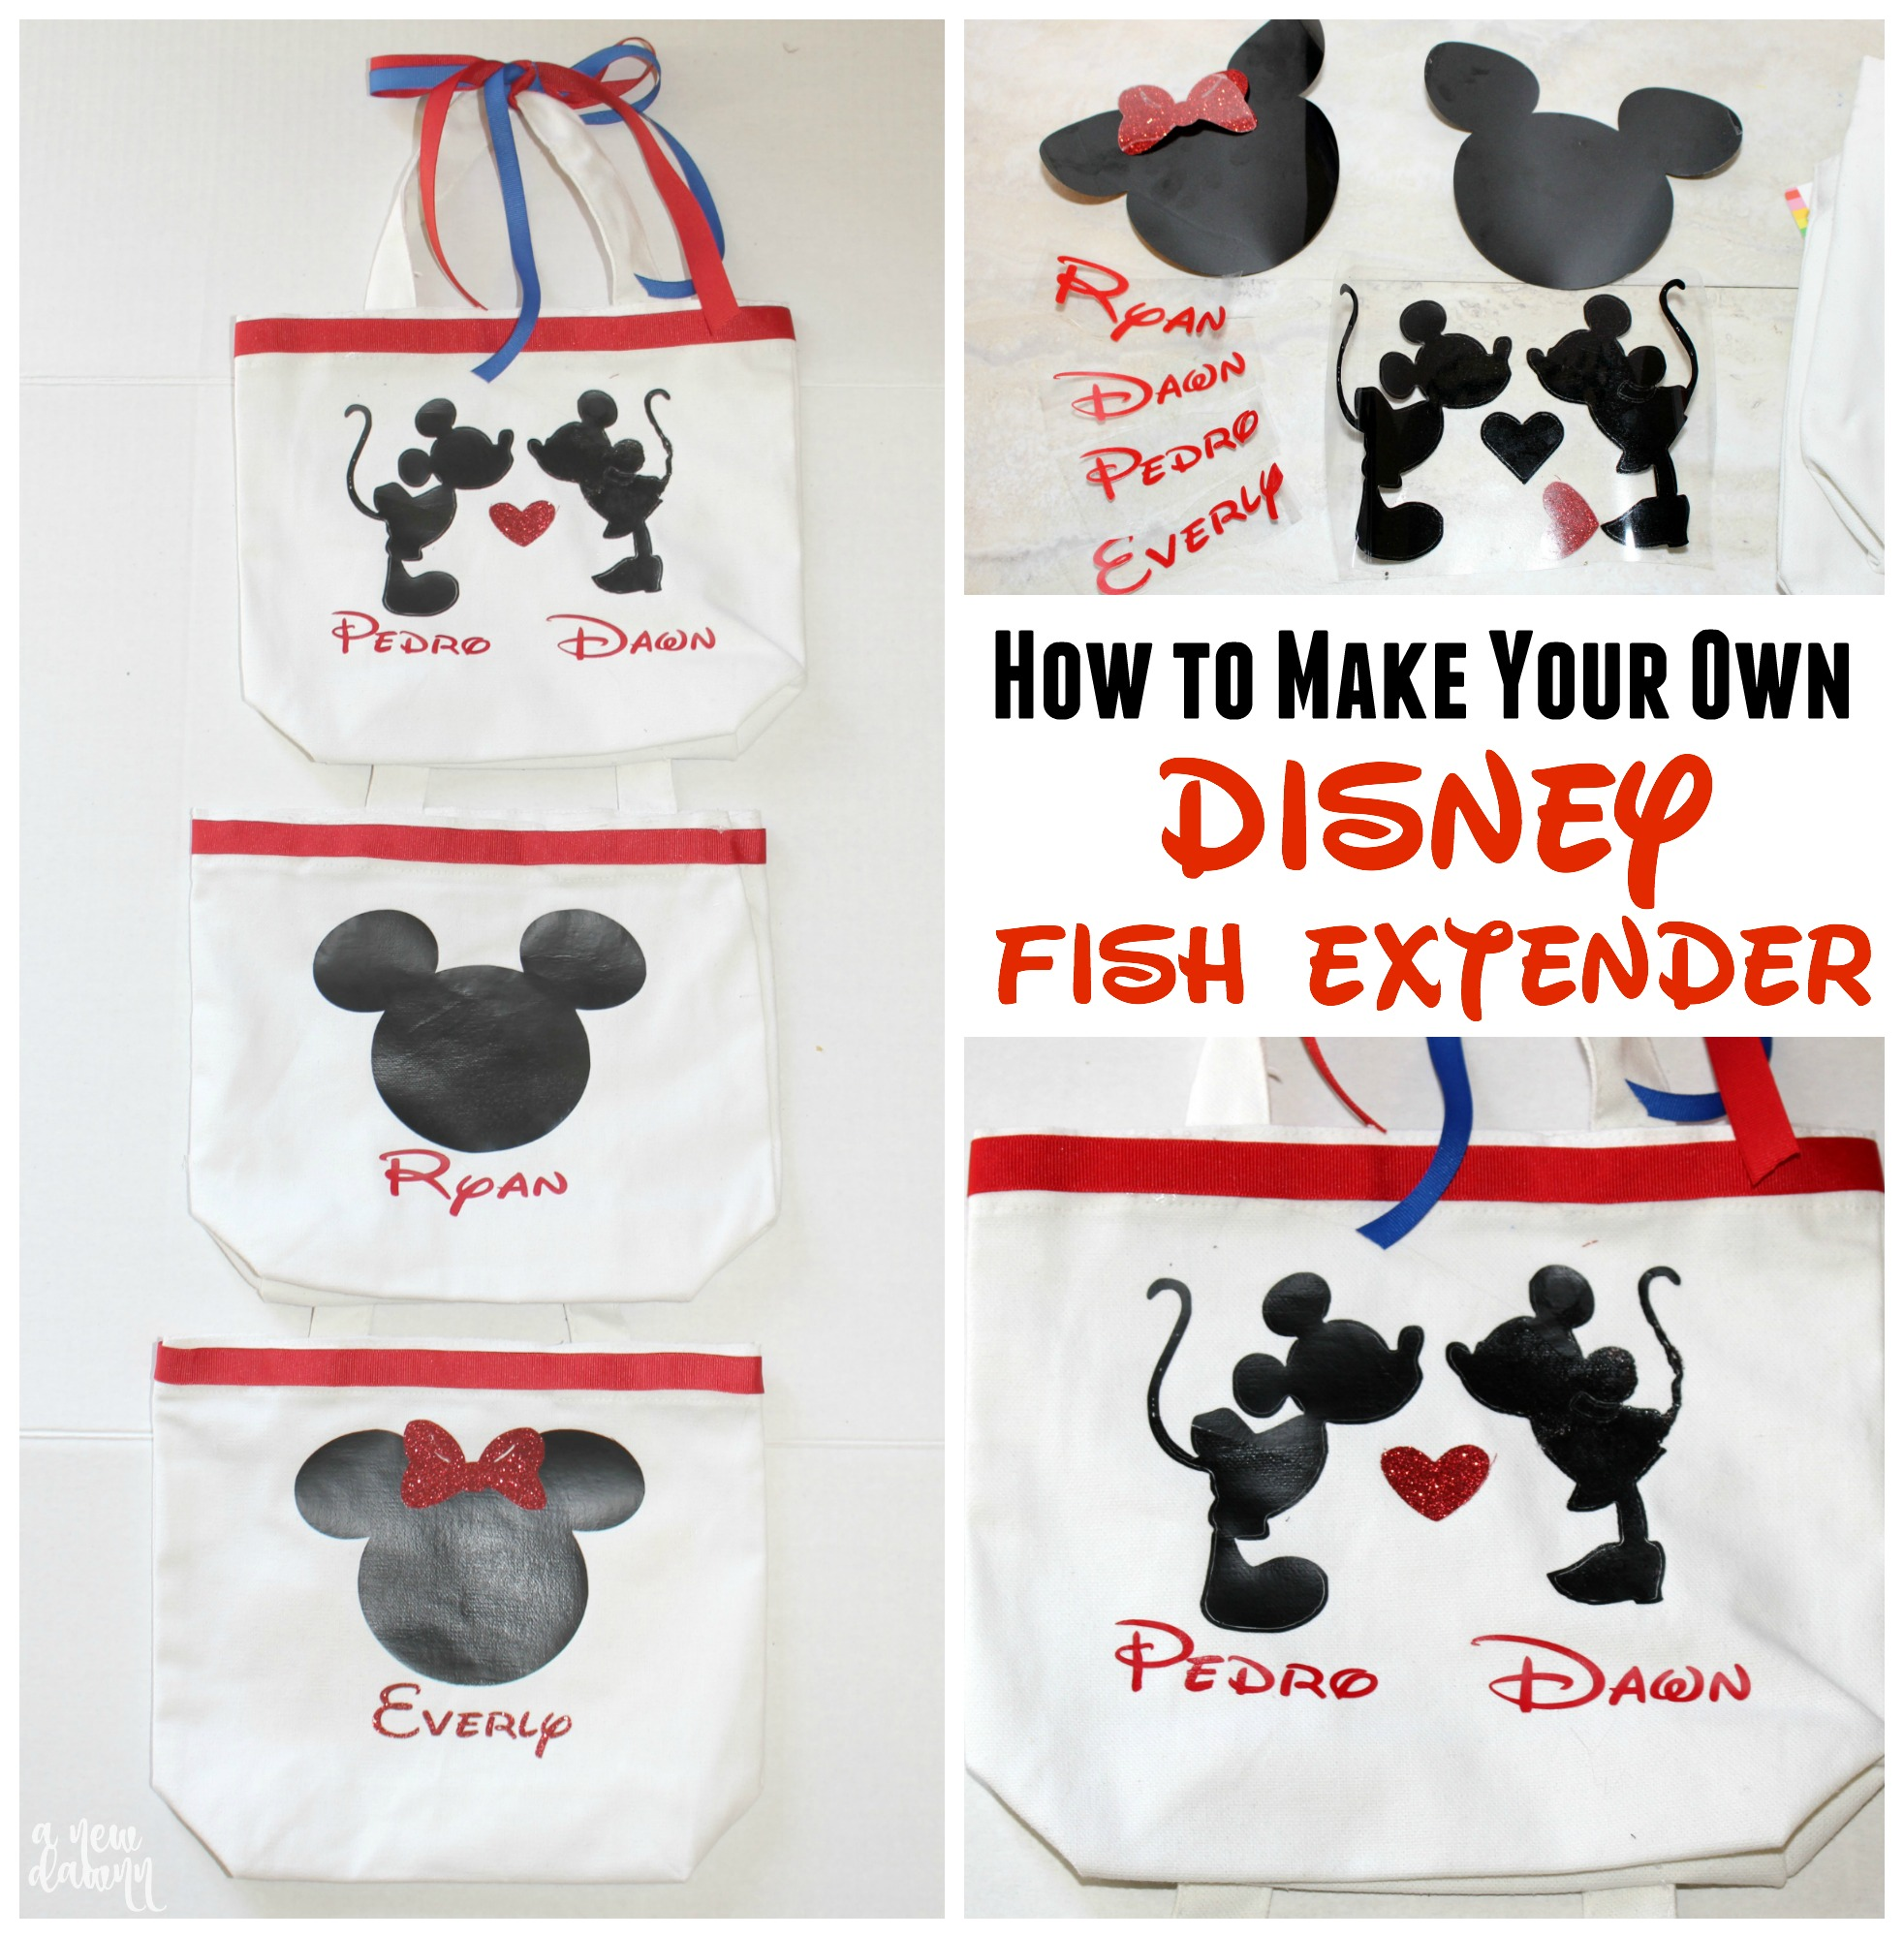 How To Make Disney Fish Extender